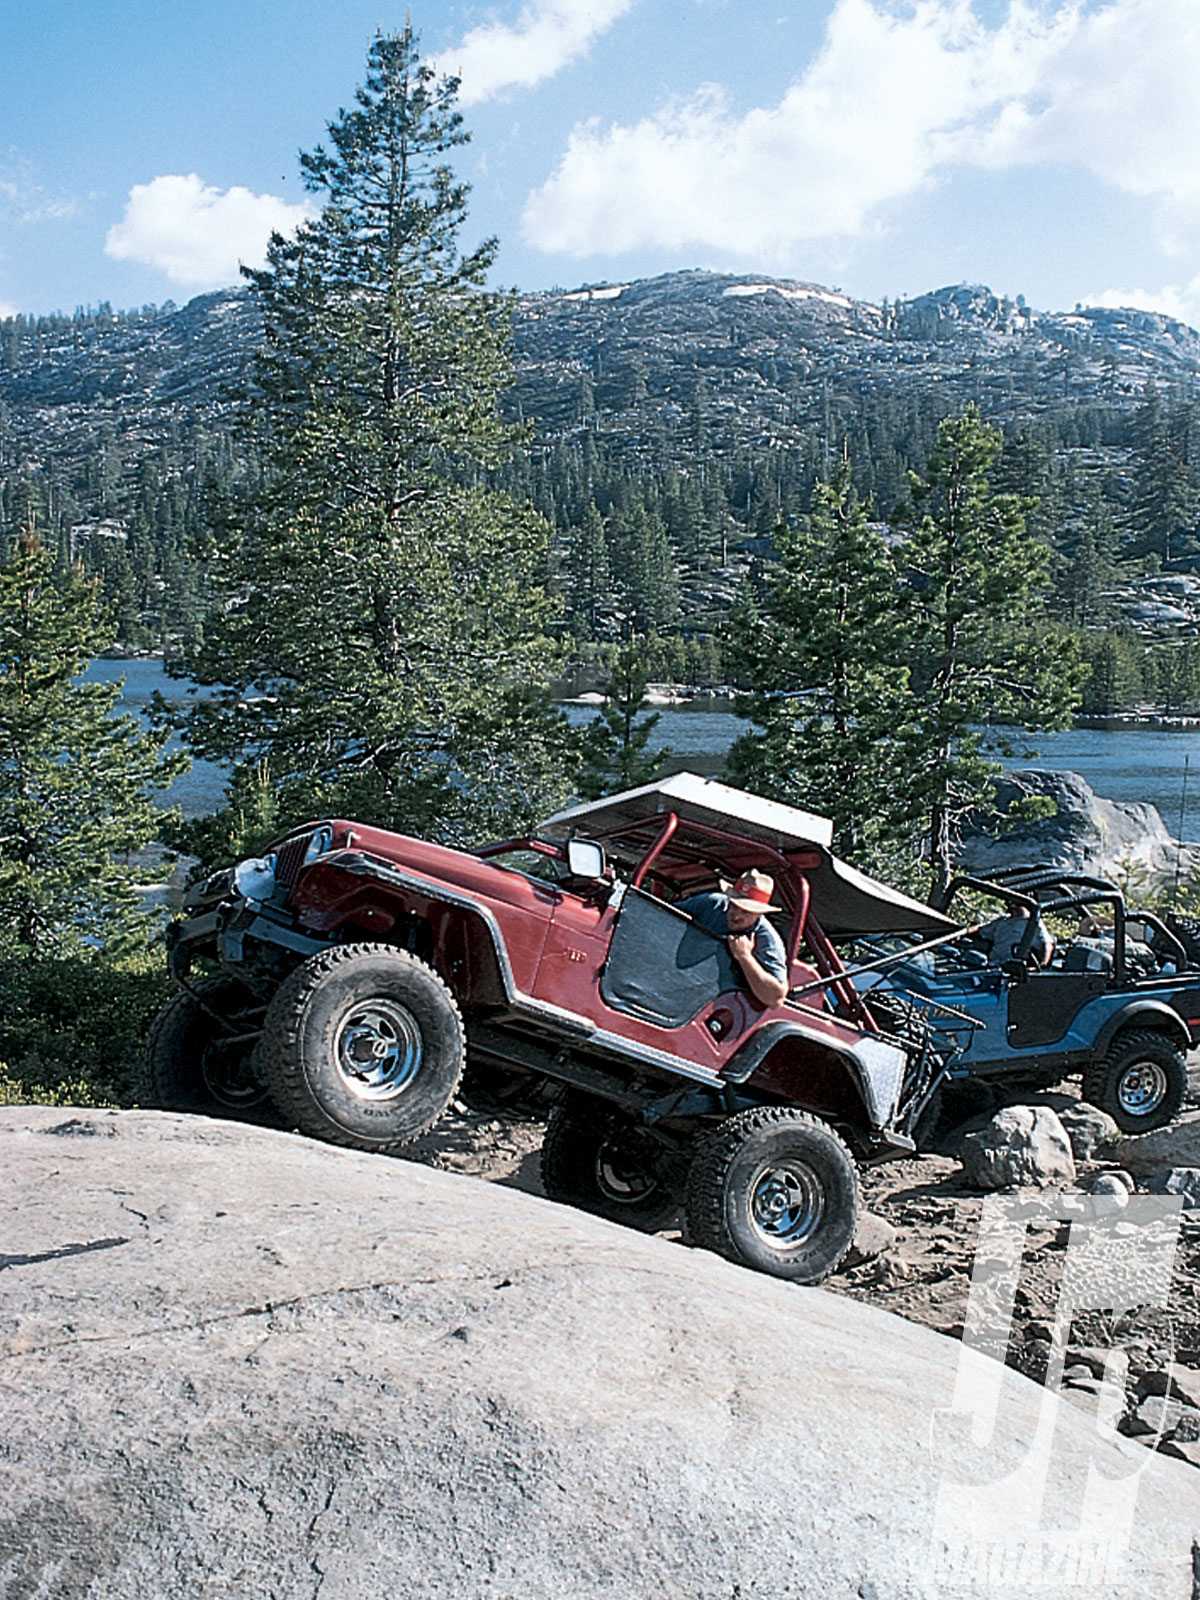 154 9901 09 o+154 9901 rubicon jeep fest+cj jeep on big sluice